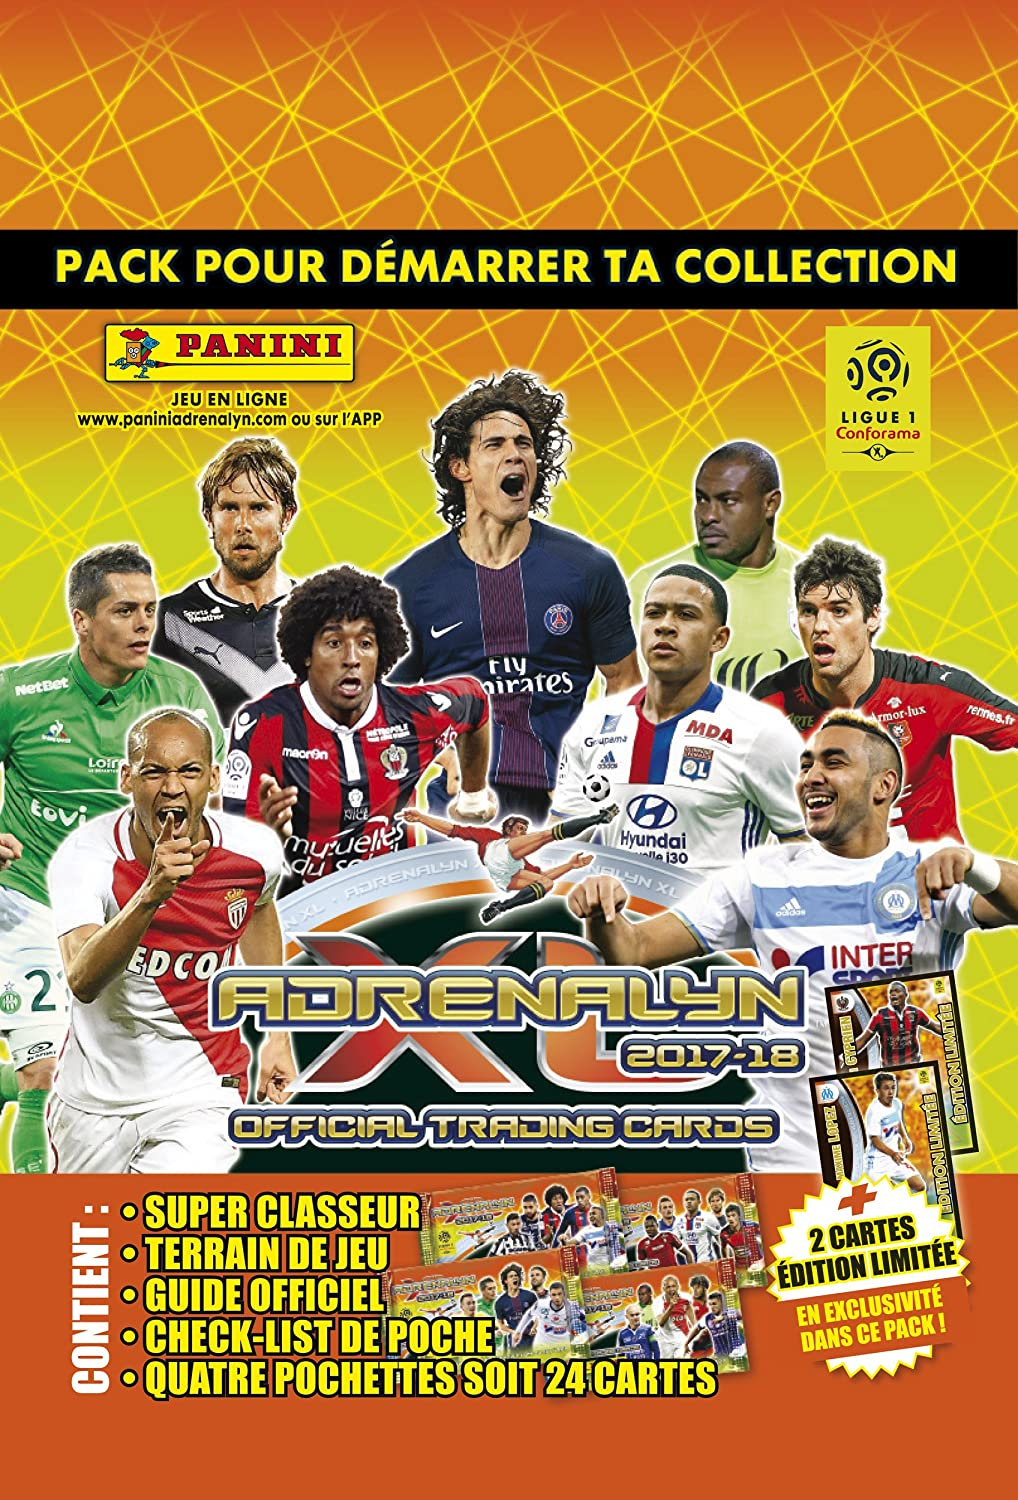 Panini 2320 – 015 Foot Adrenalyn Starter Pack: Amazon.es: Juguetes ...